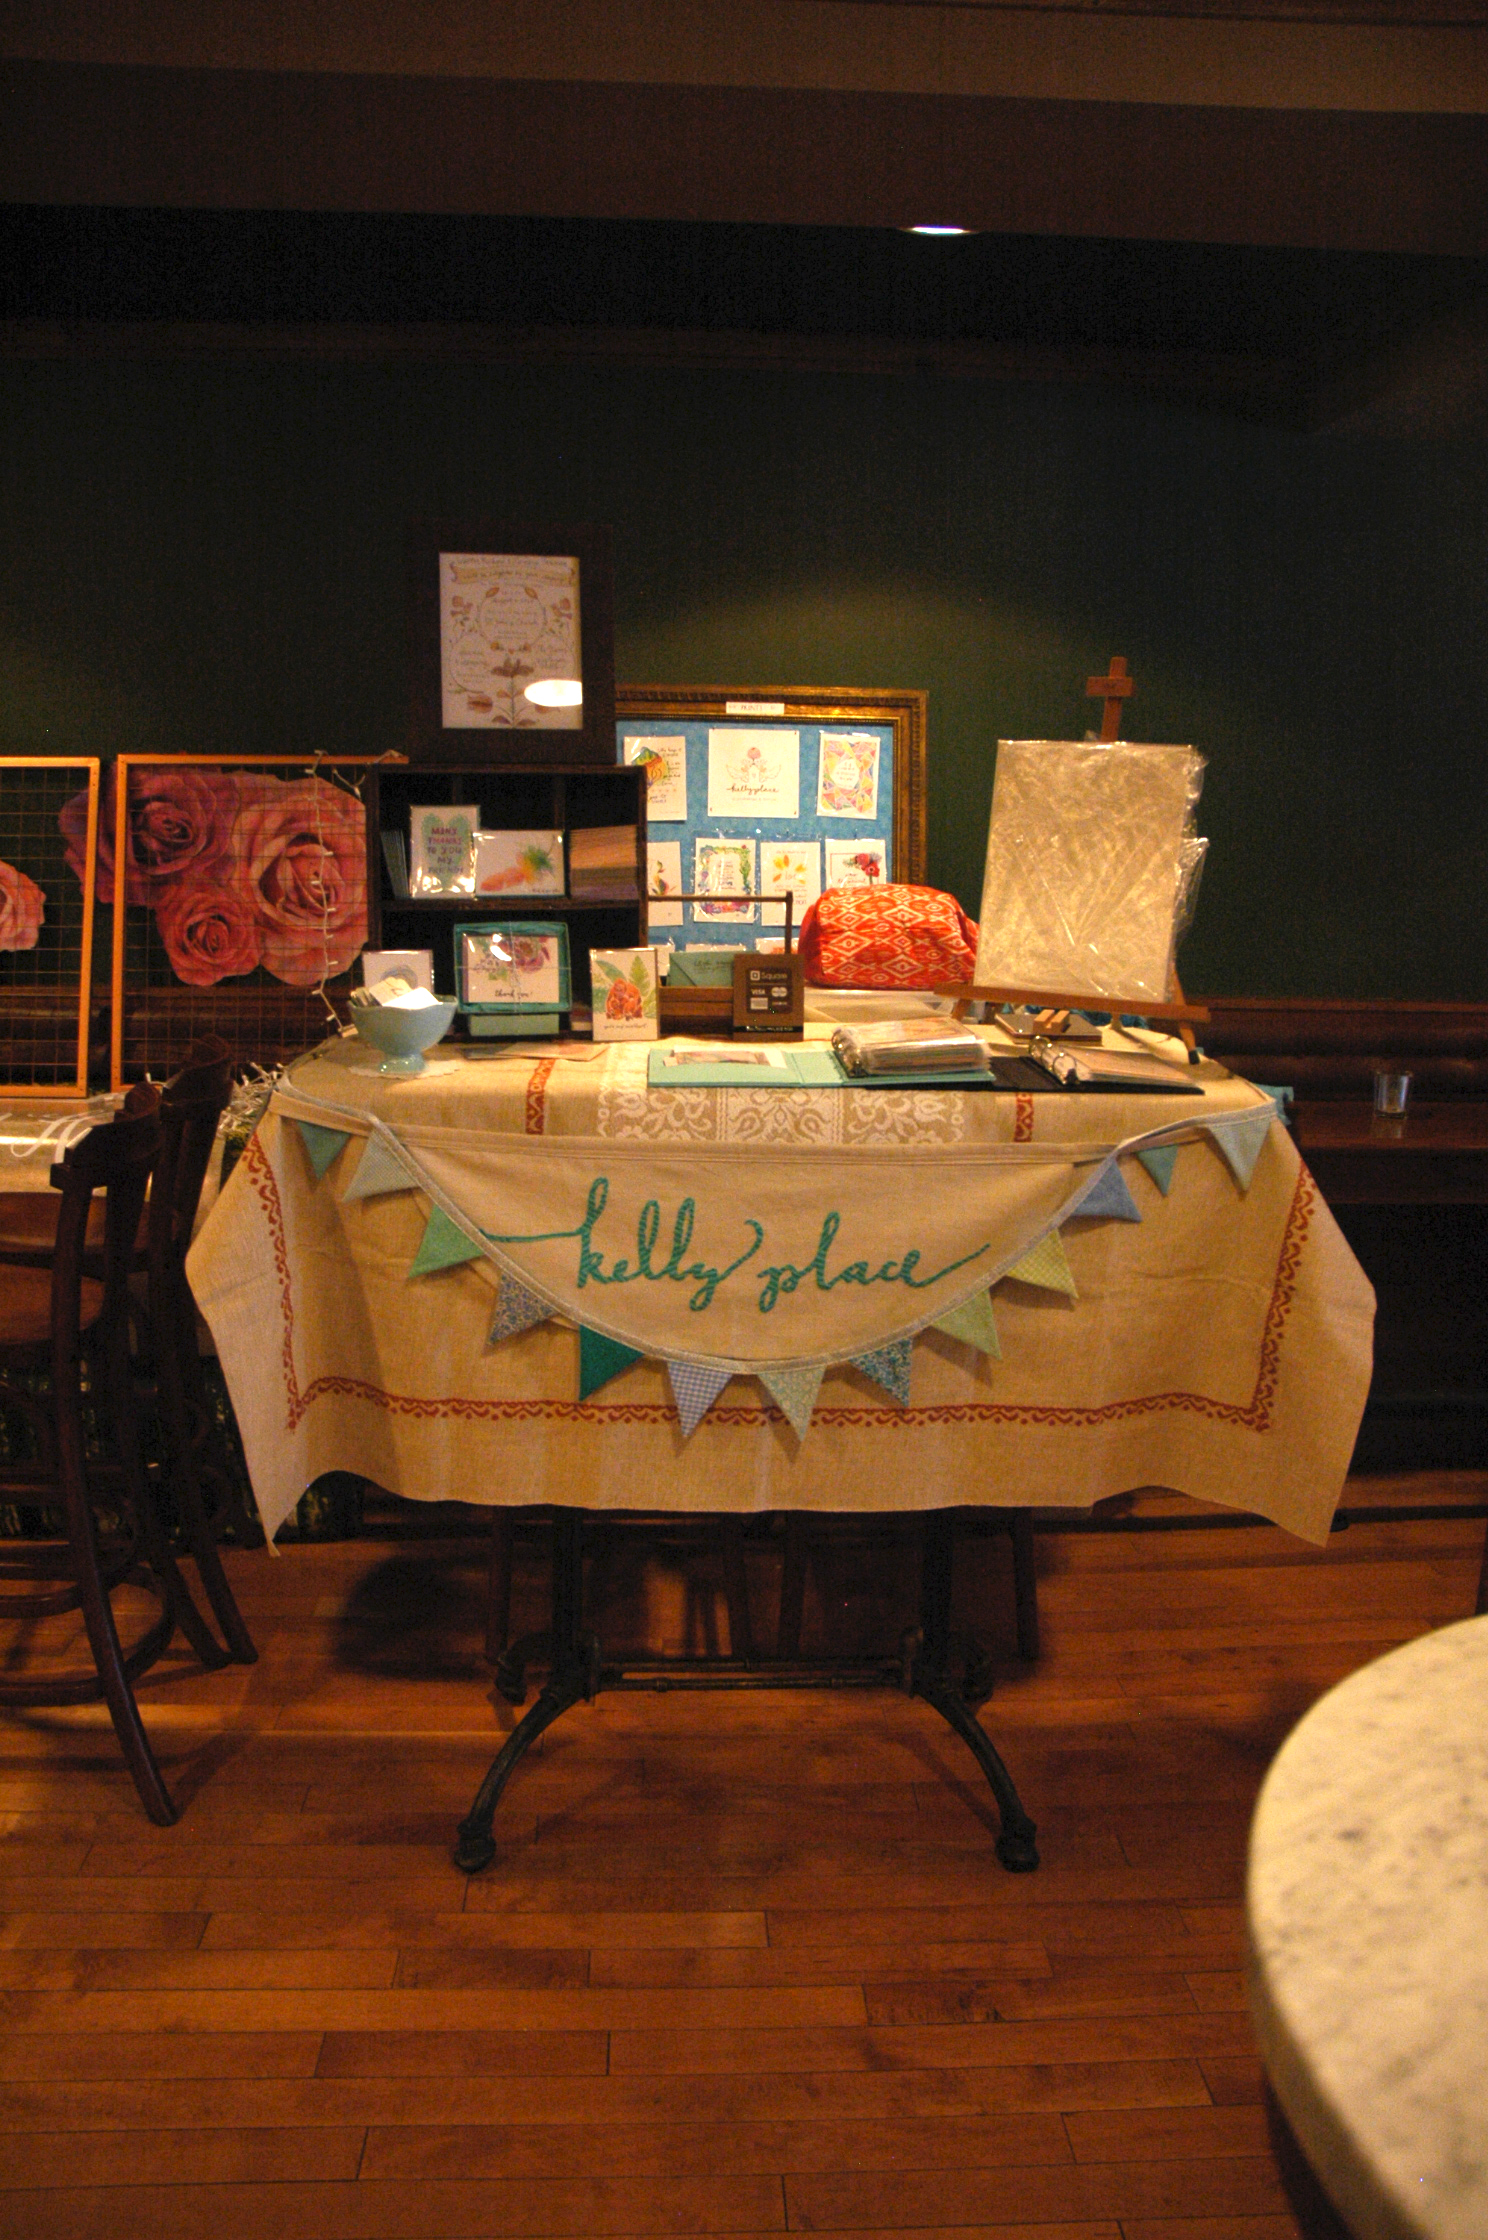 My booth for the show, complete with logo banner by Rachel Herman. Thanks, Rachel!